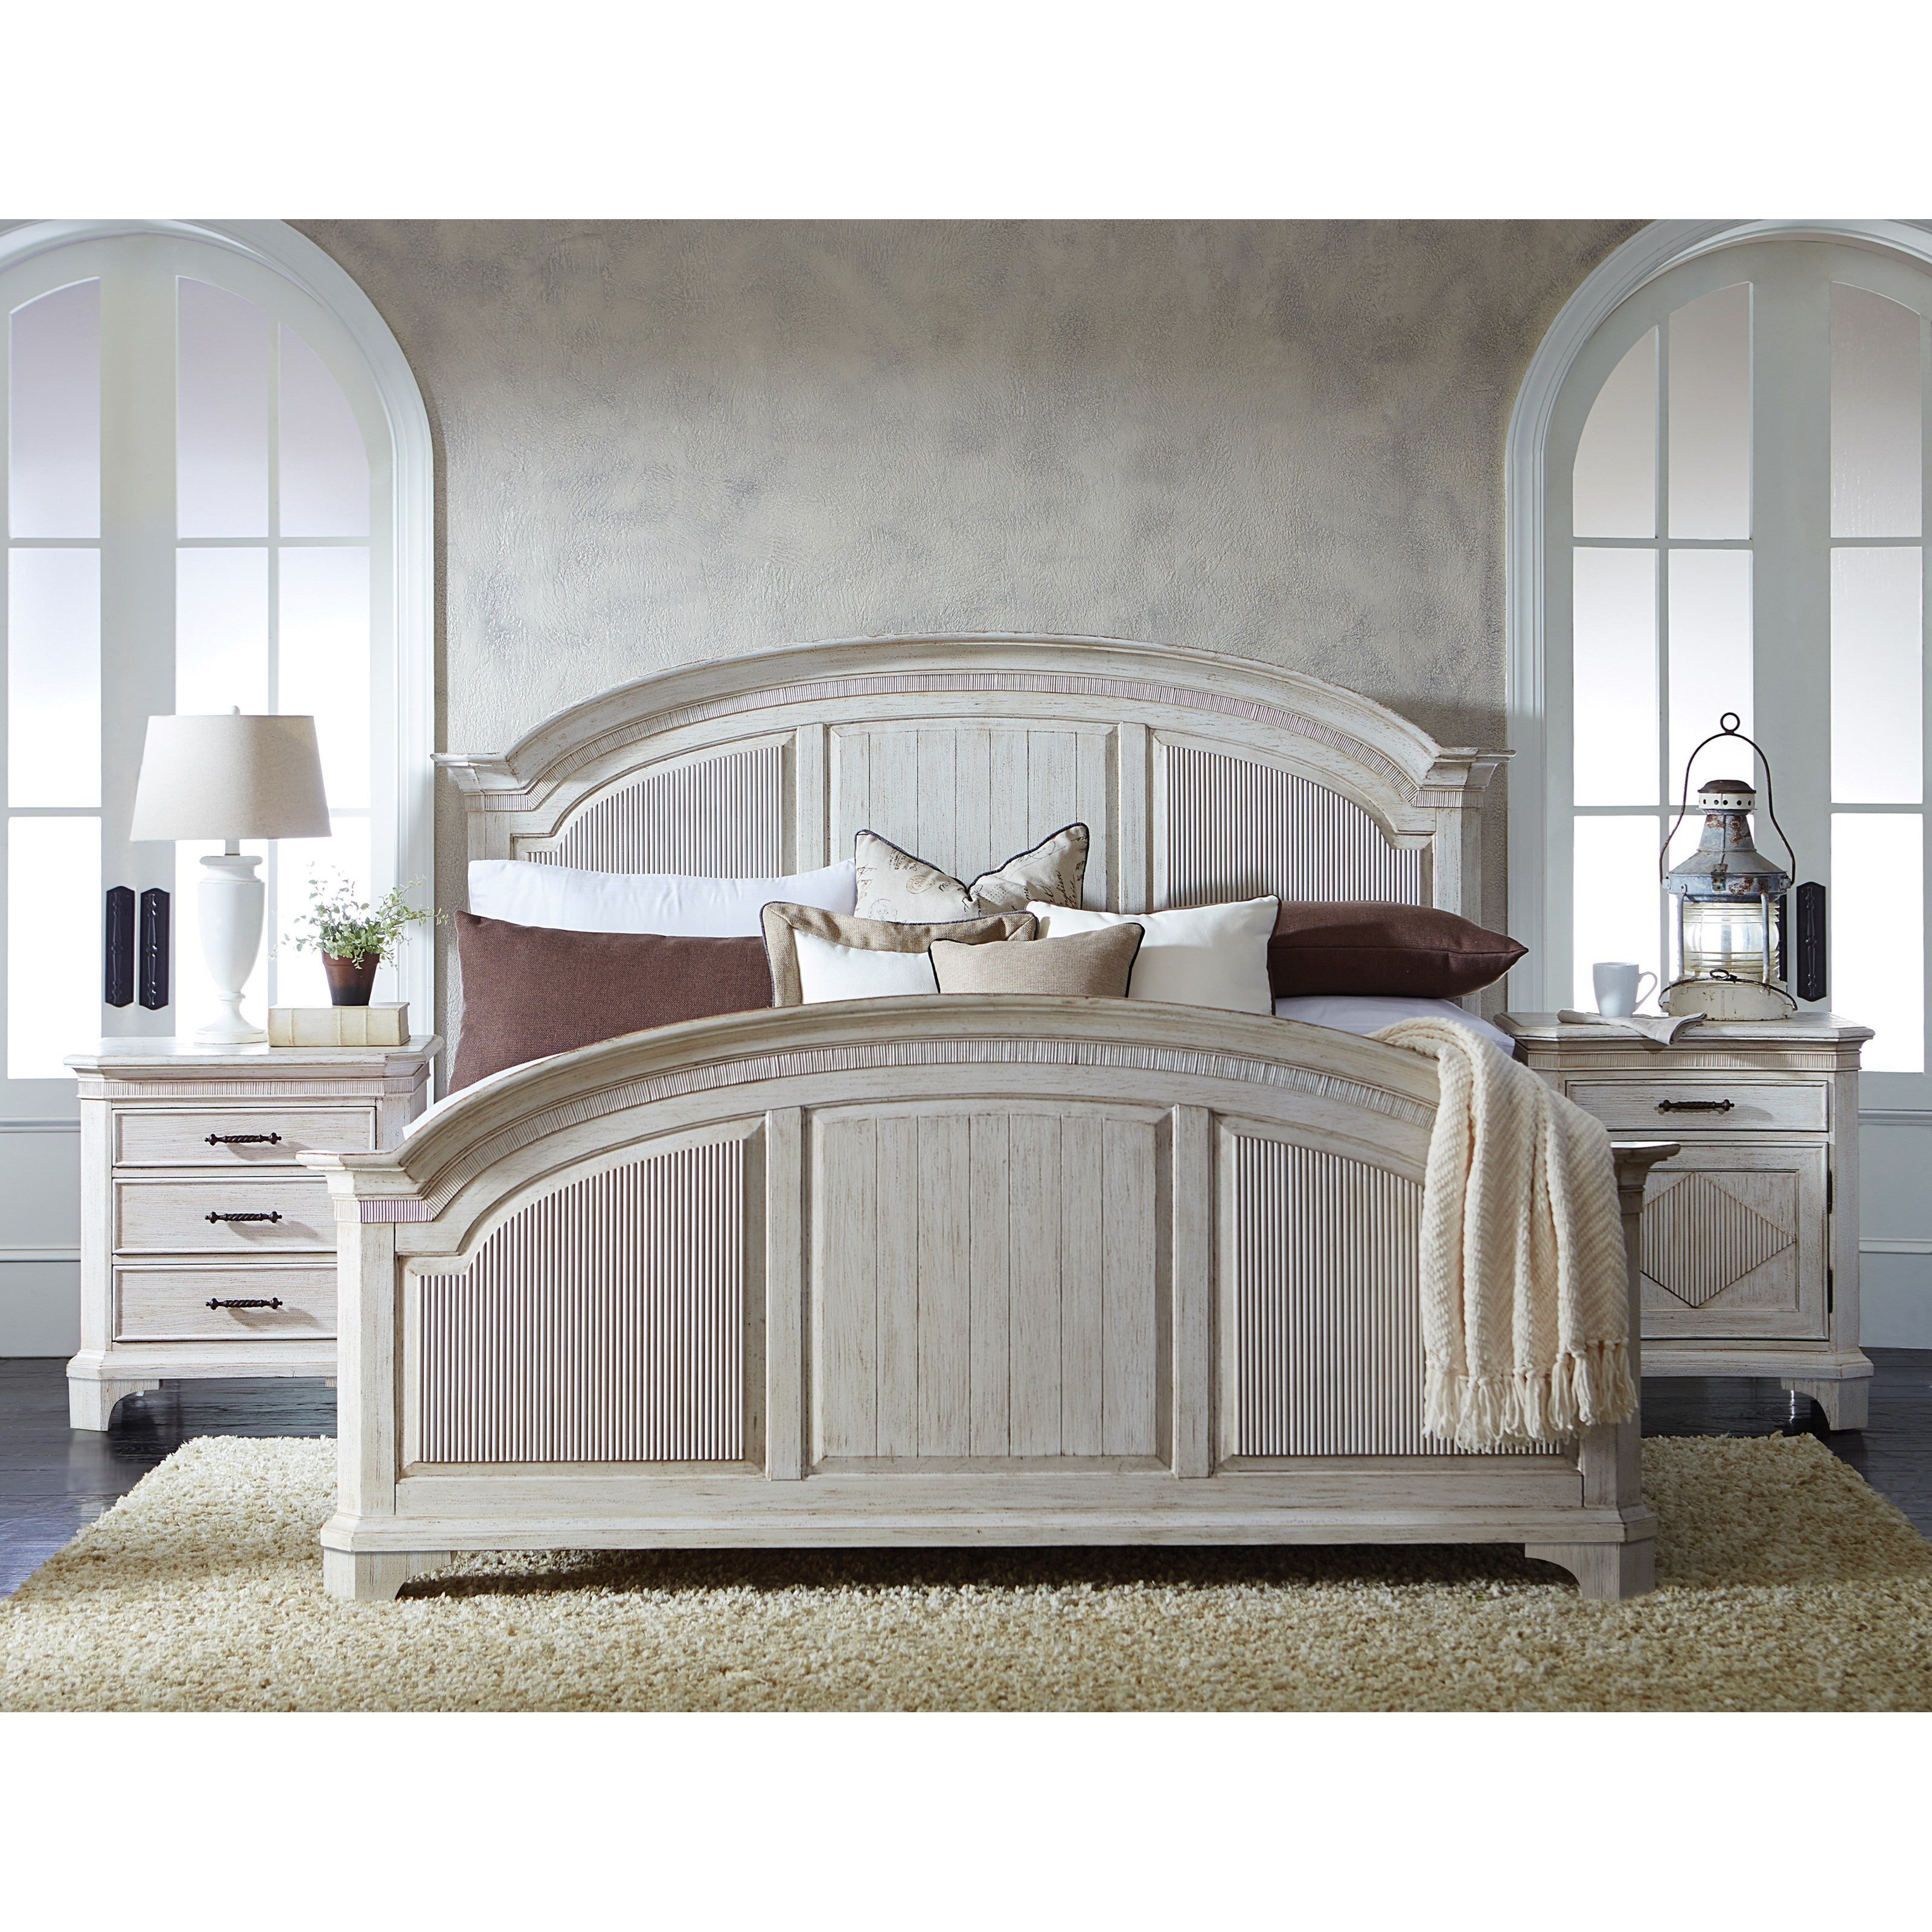 Best Riverside Furniture Aberdeen Queen Bedroom Group 4 Value With Pictures